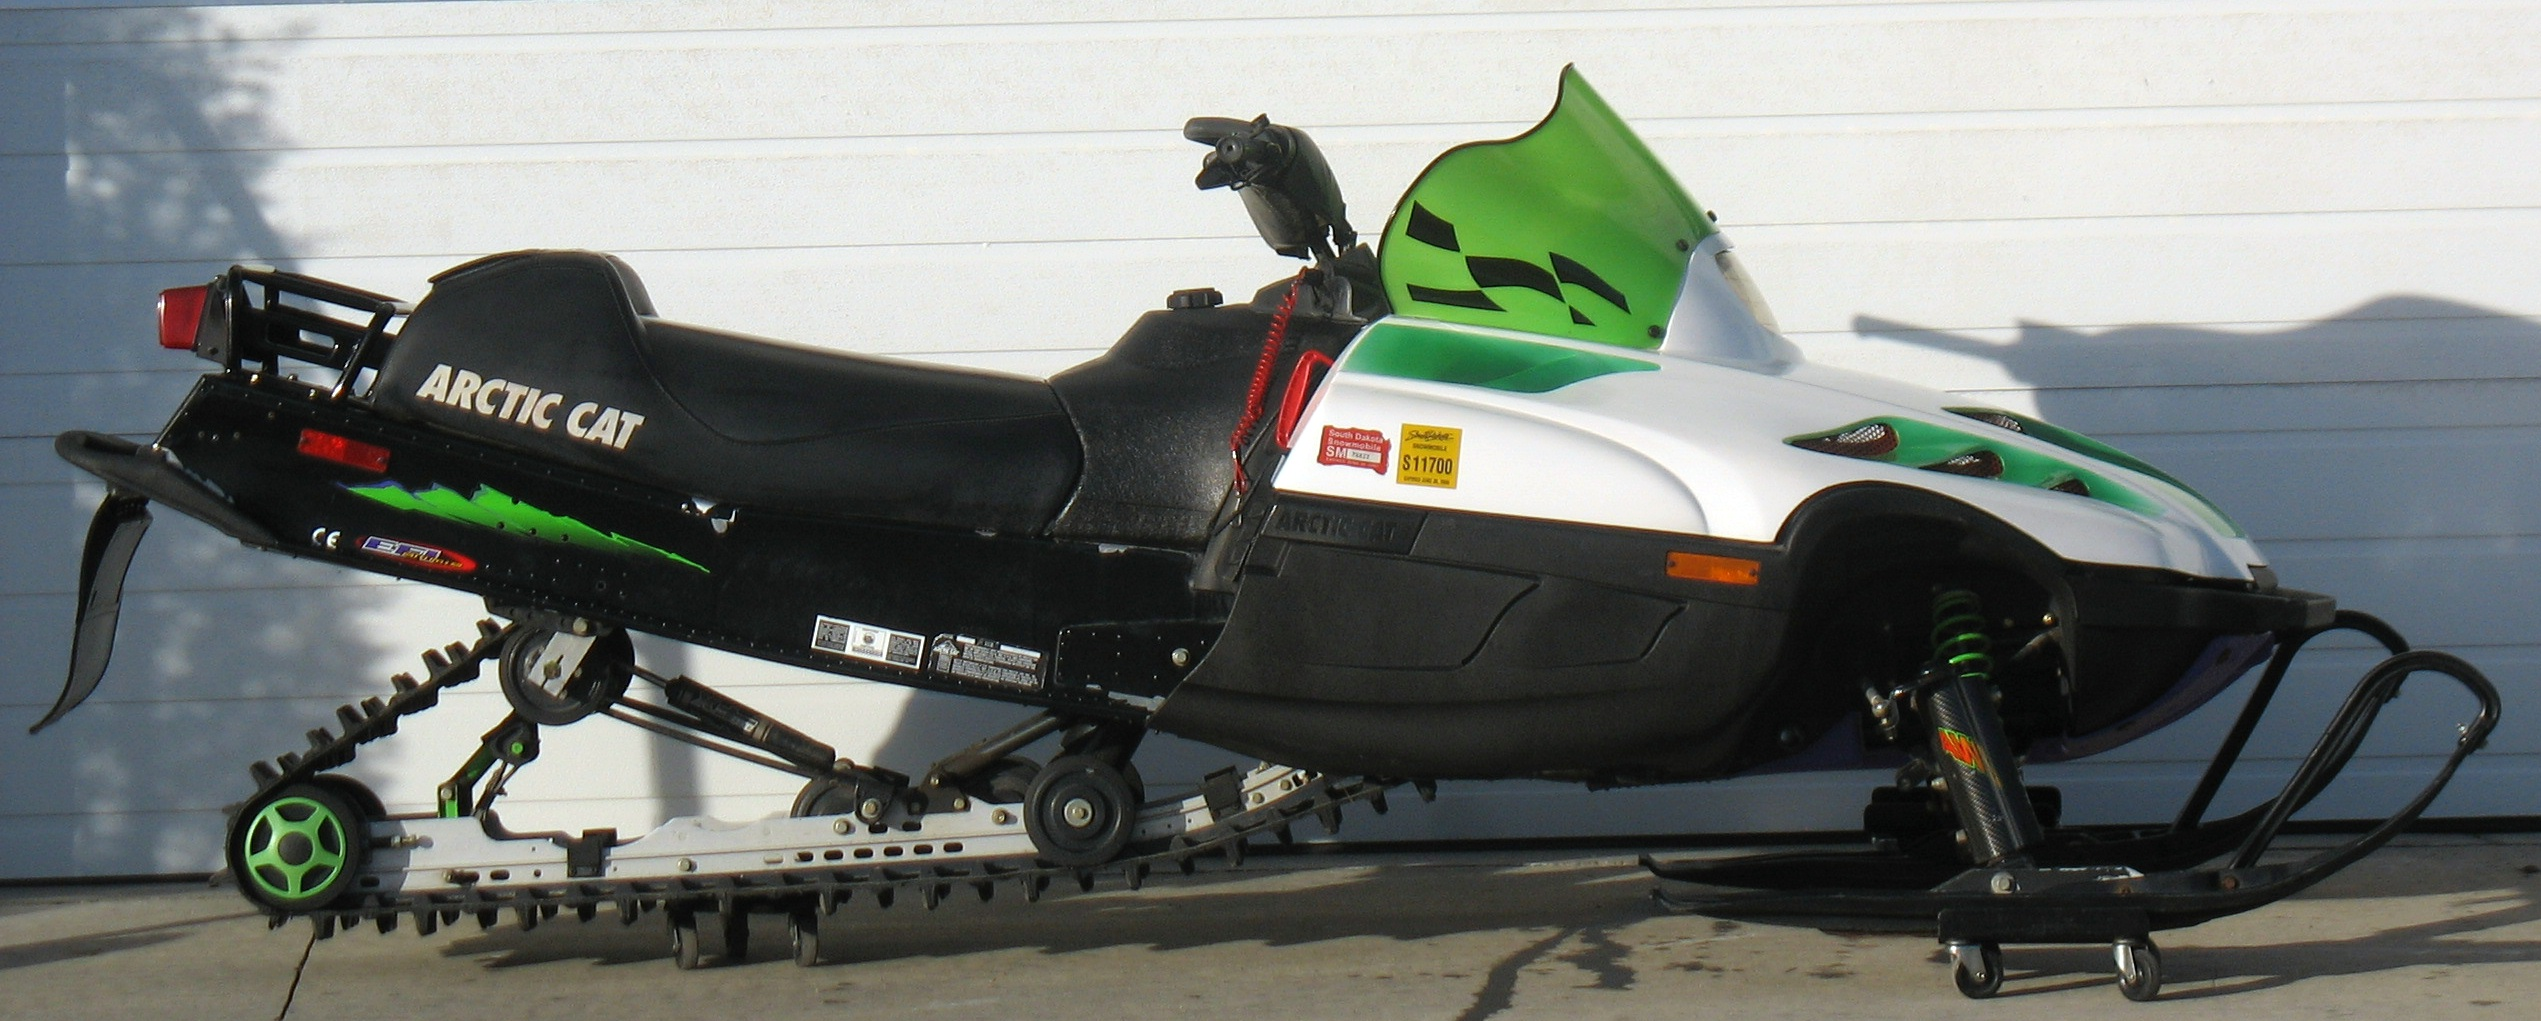 1999 Arctic Cat 500 Powder Special The Owner Of This One Has 3 Sleds That They No Longer Ride 00 And 05 M 7